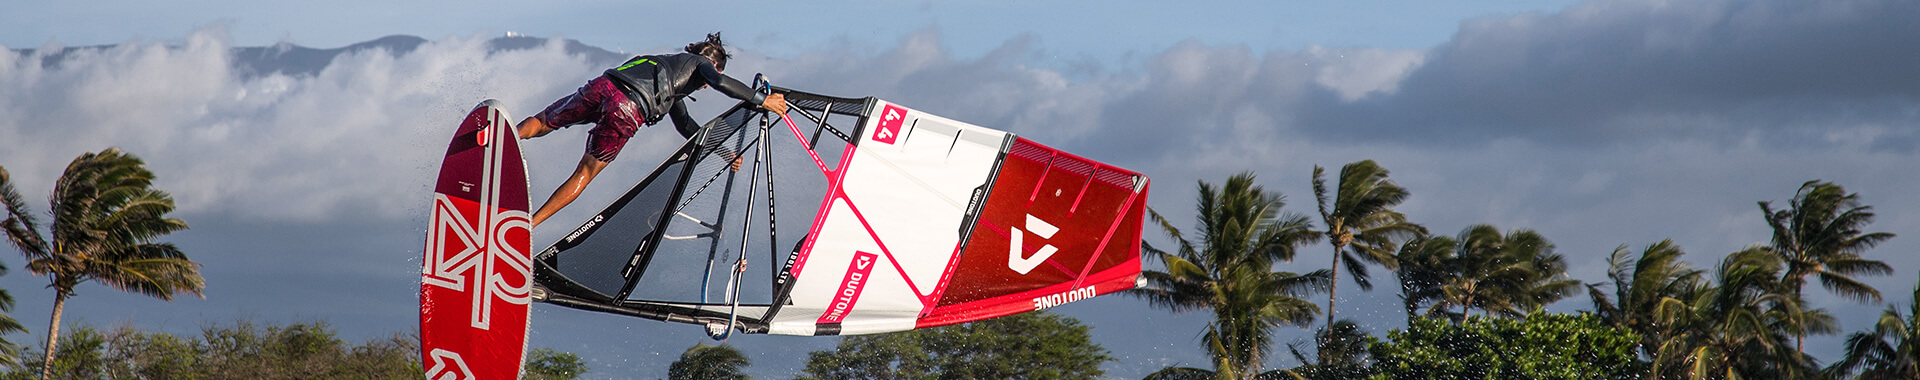 Duotone_Windsurfing_Sails_Idol_LTD_2019